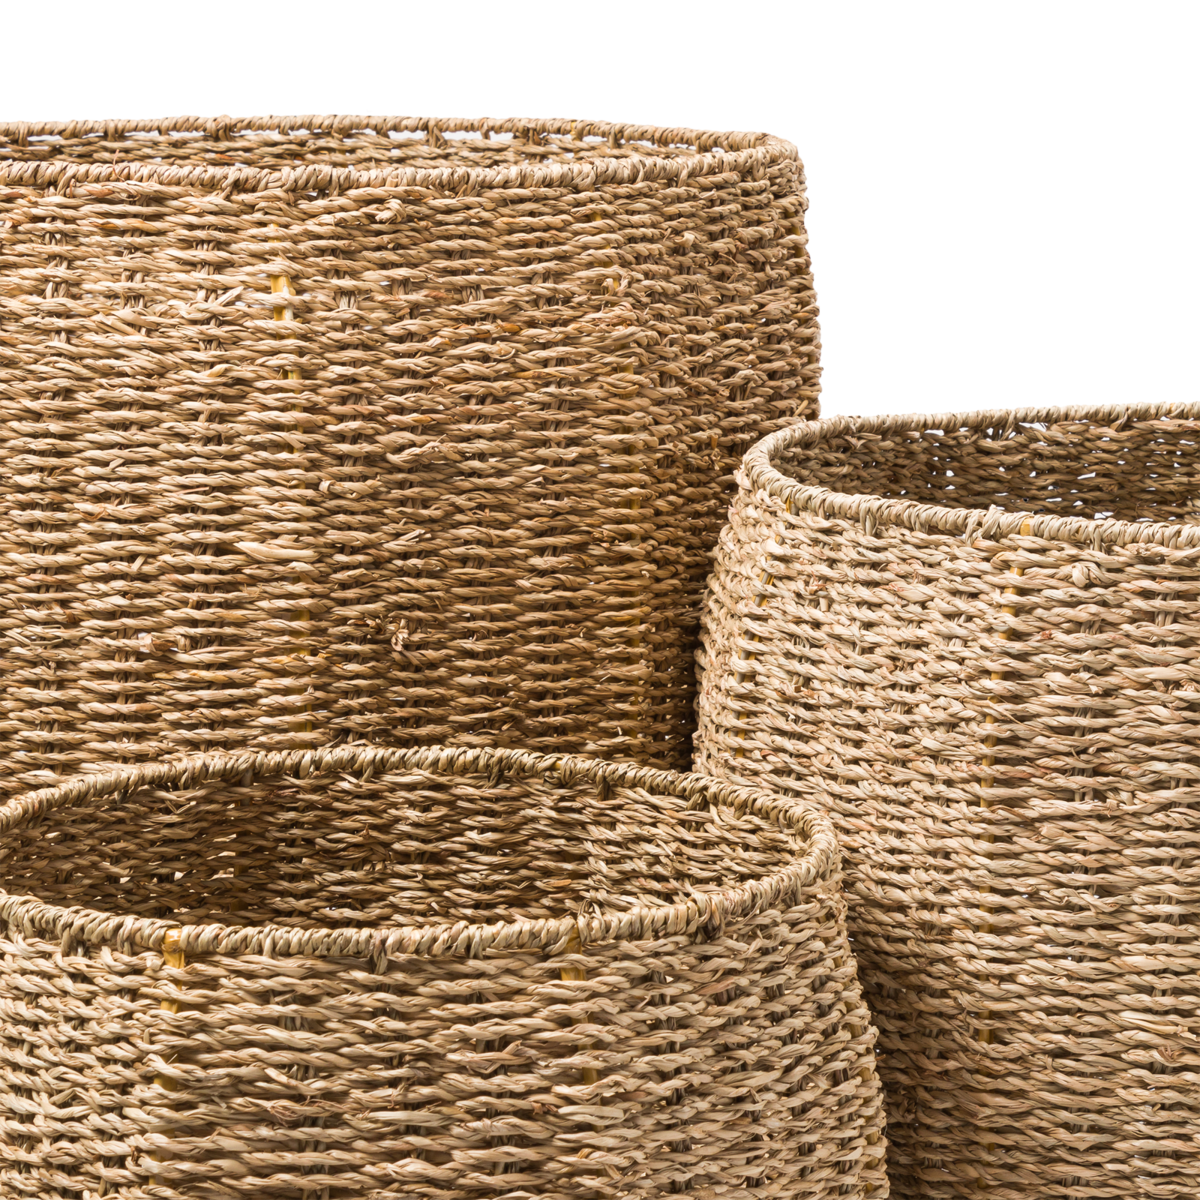 Laundry baskets product photo